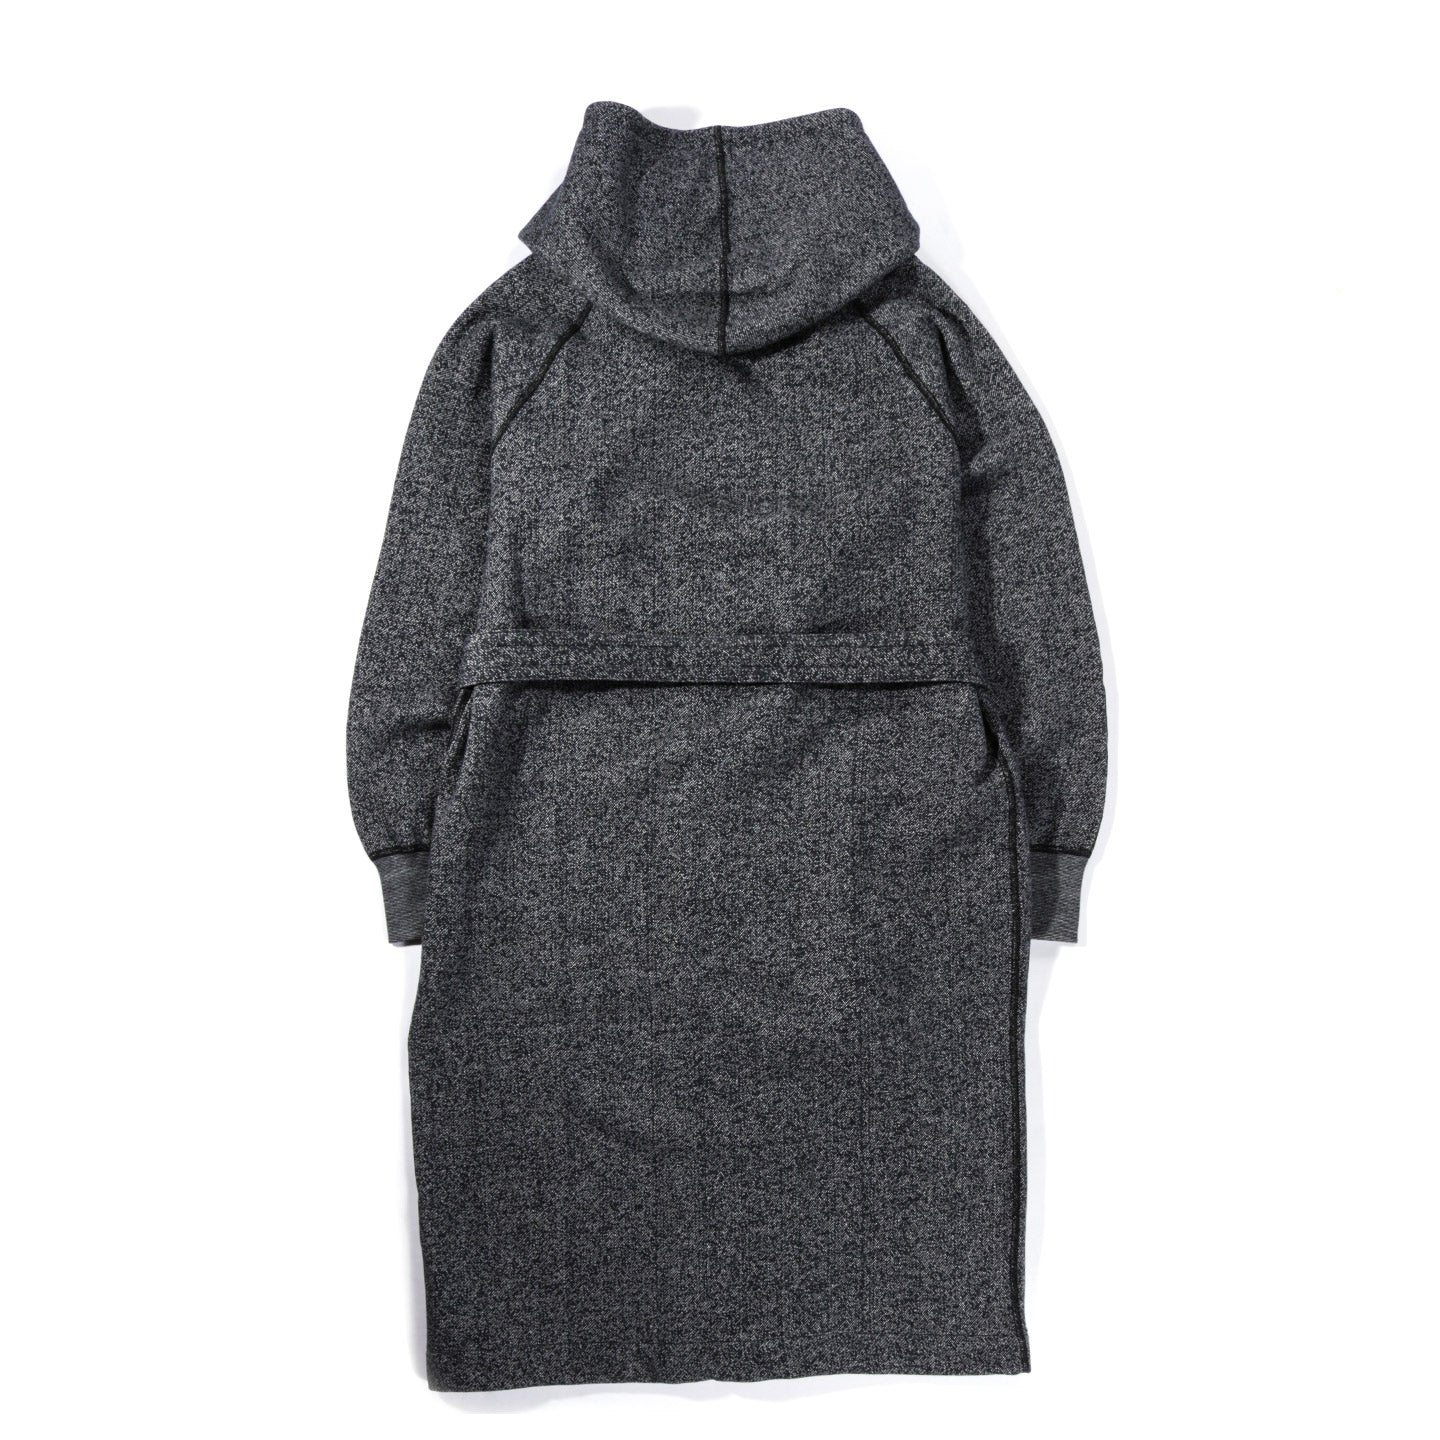 REIGNING CHAMP TIGER FLEECE ROBE BLACK